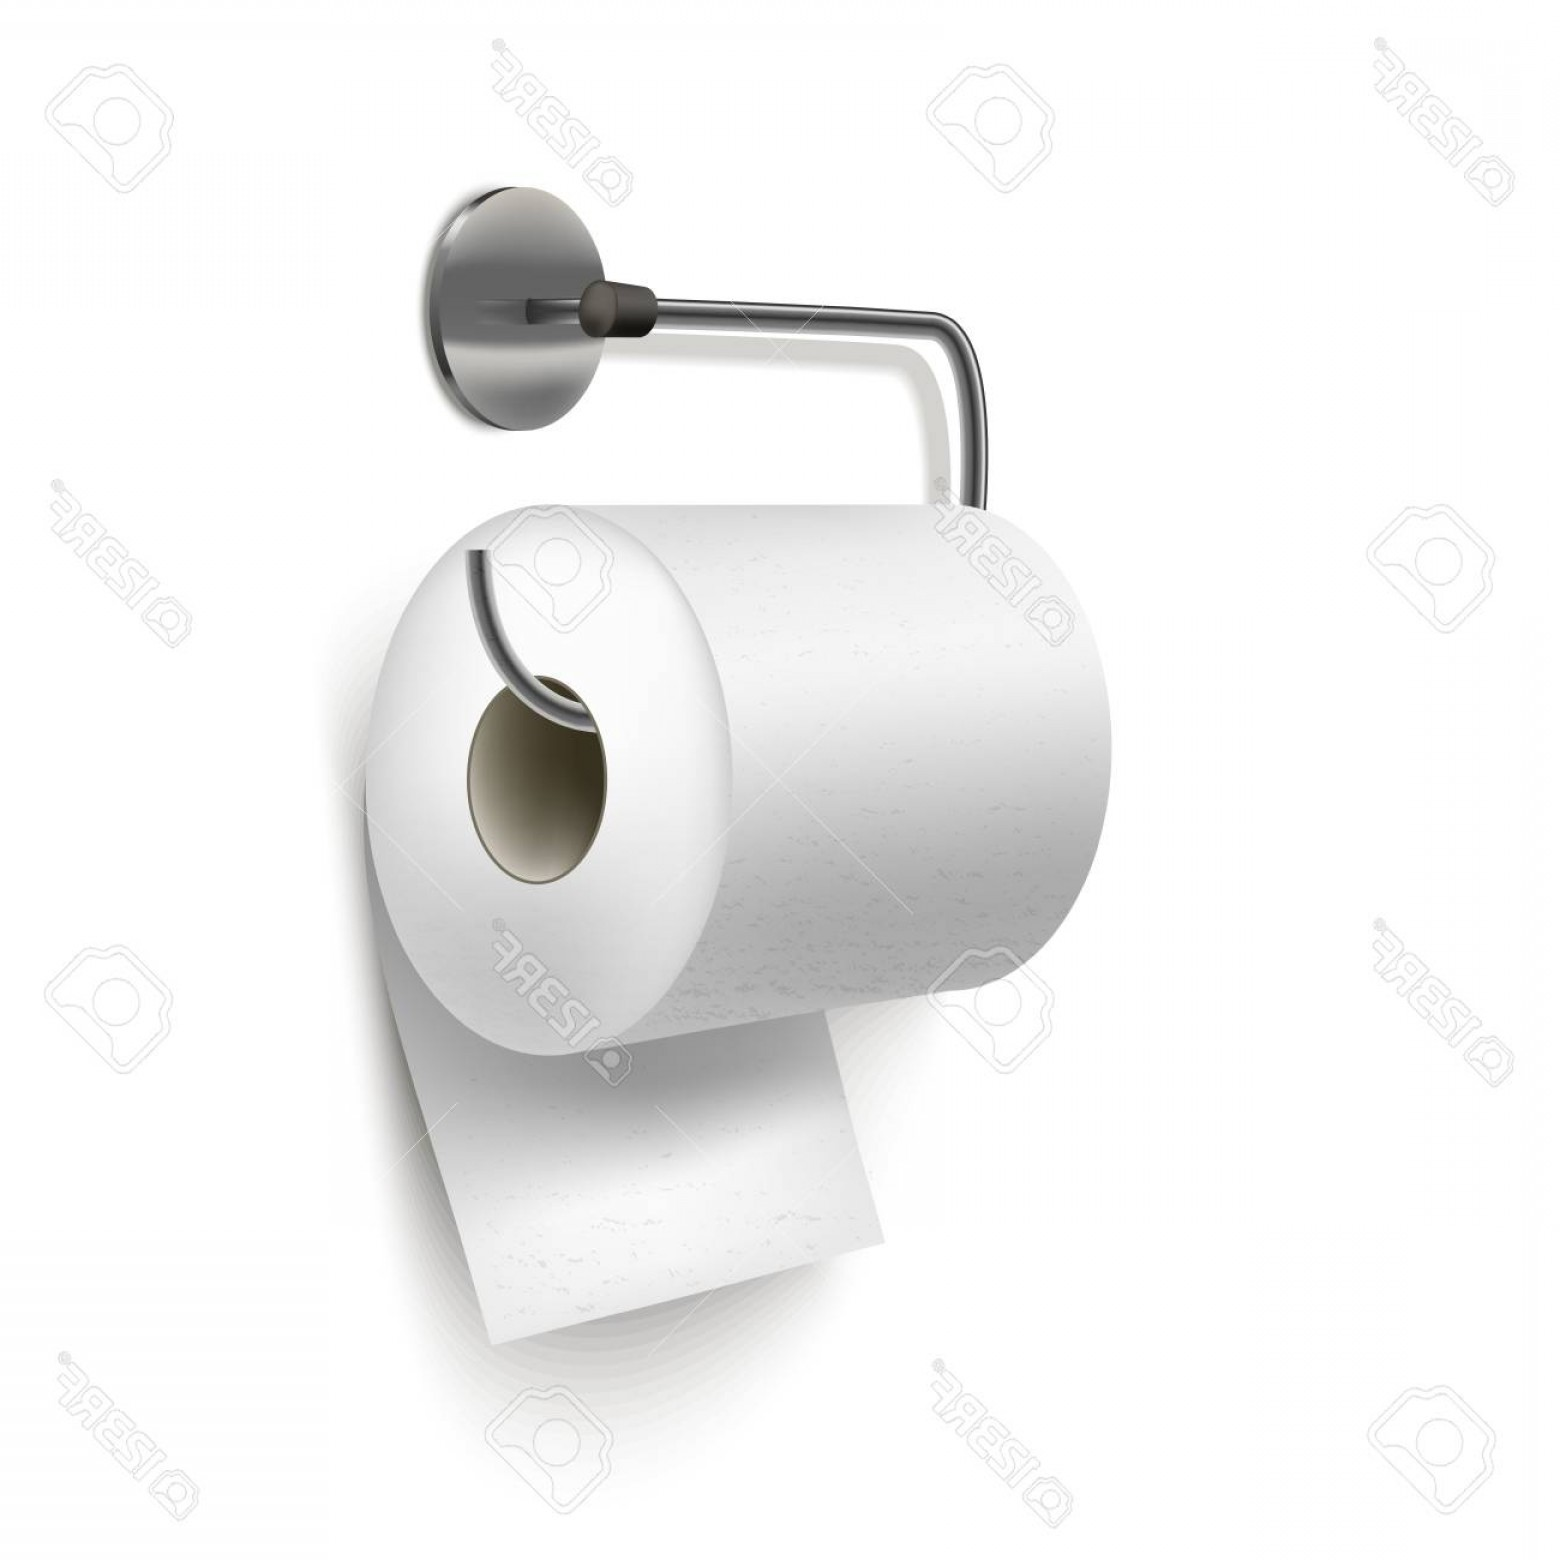 Toilet Paper Vector: Photorealistic Detailed D Textured Toilet Paper Vector